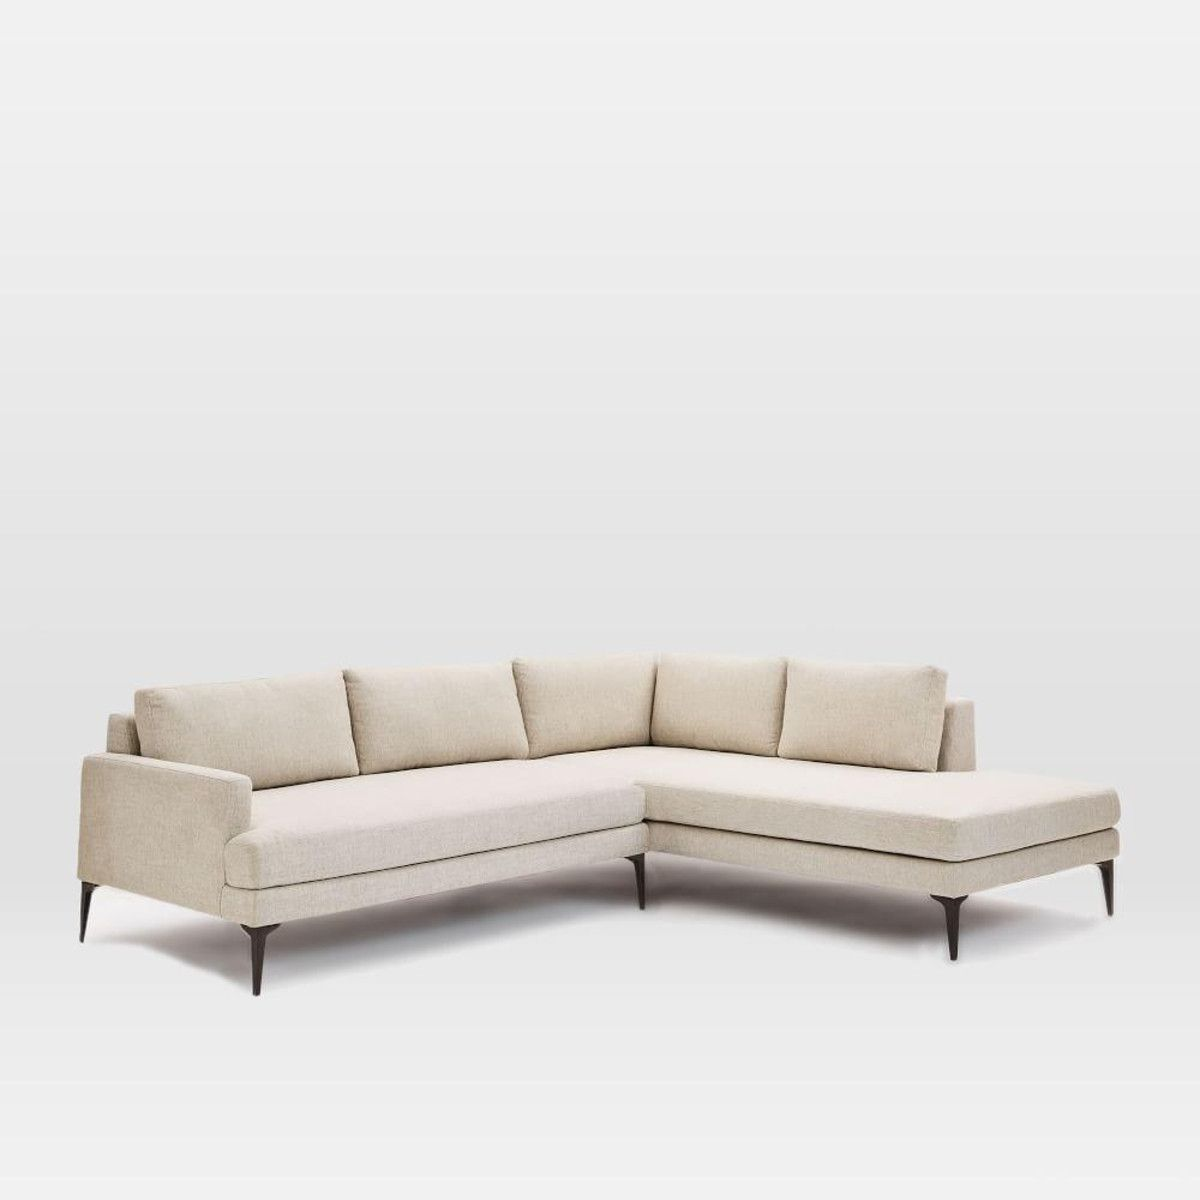 Andes Terminal Chaise Sectional At West Elm Overall